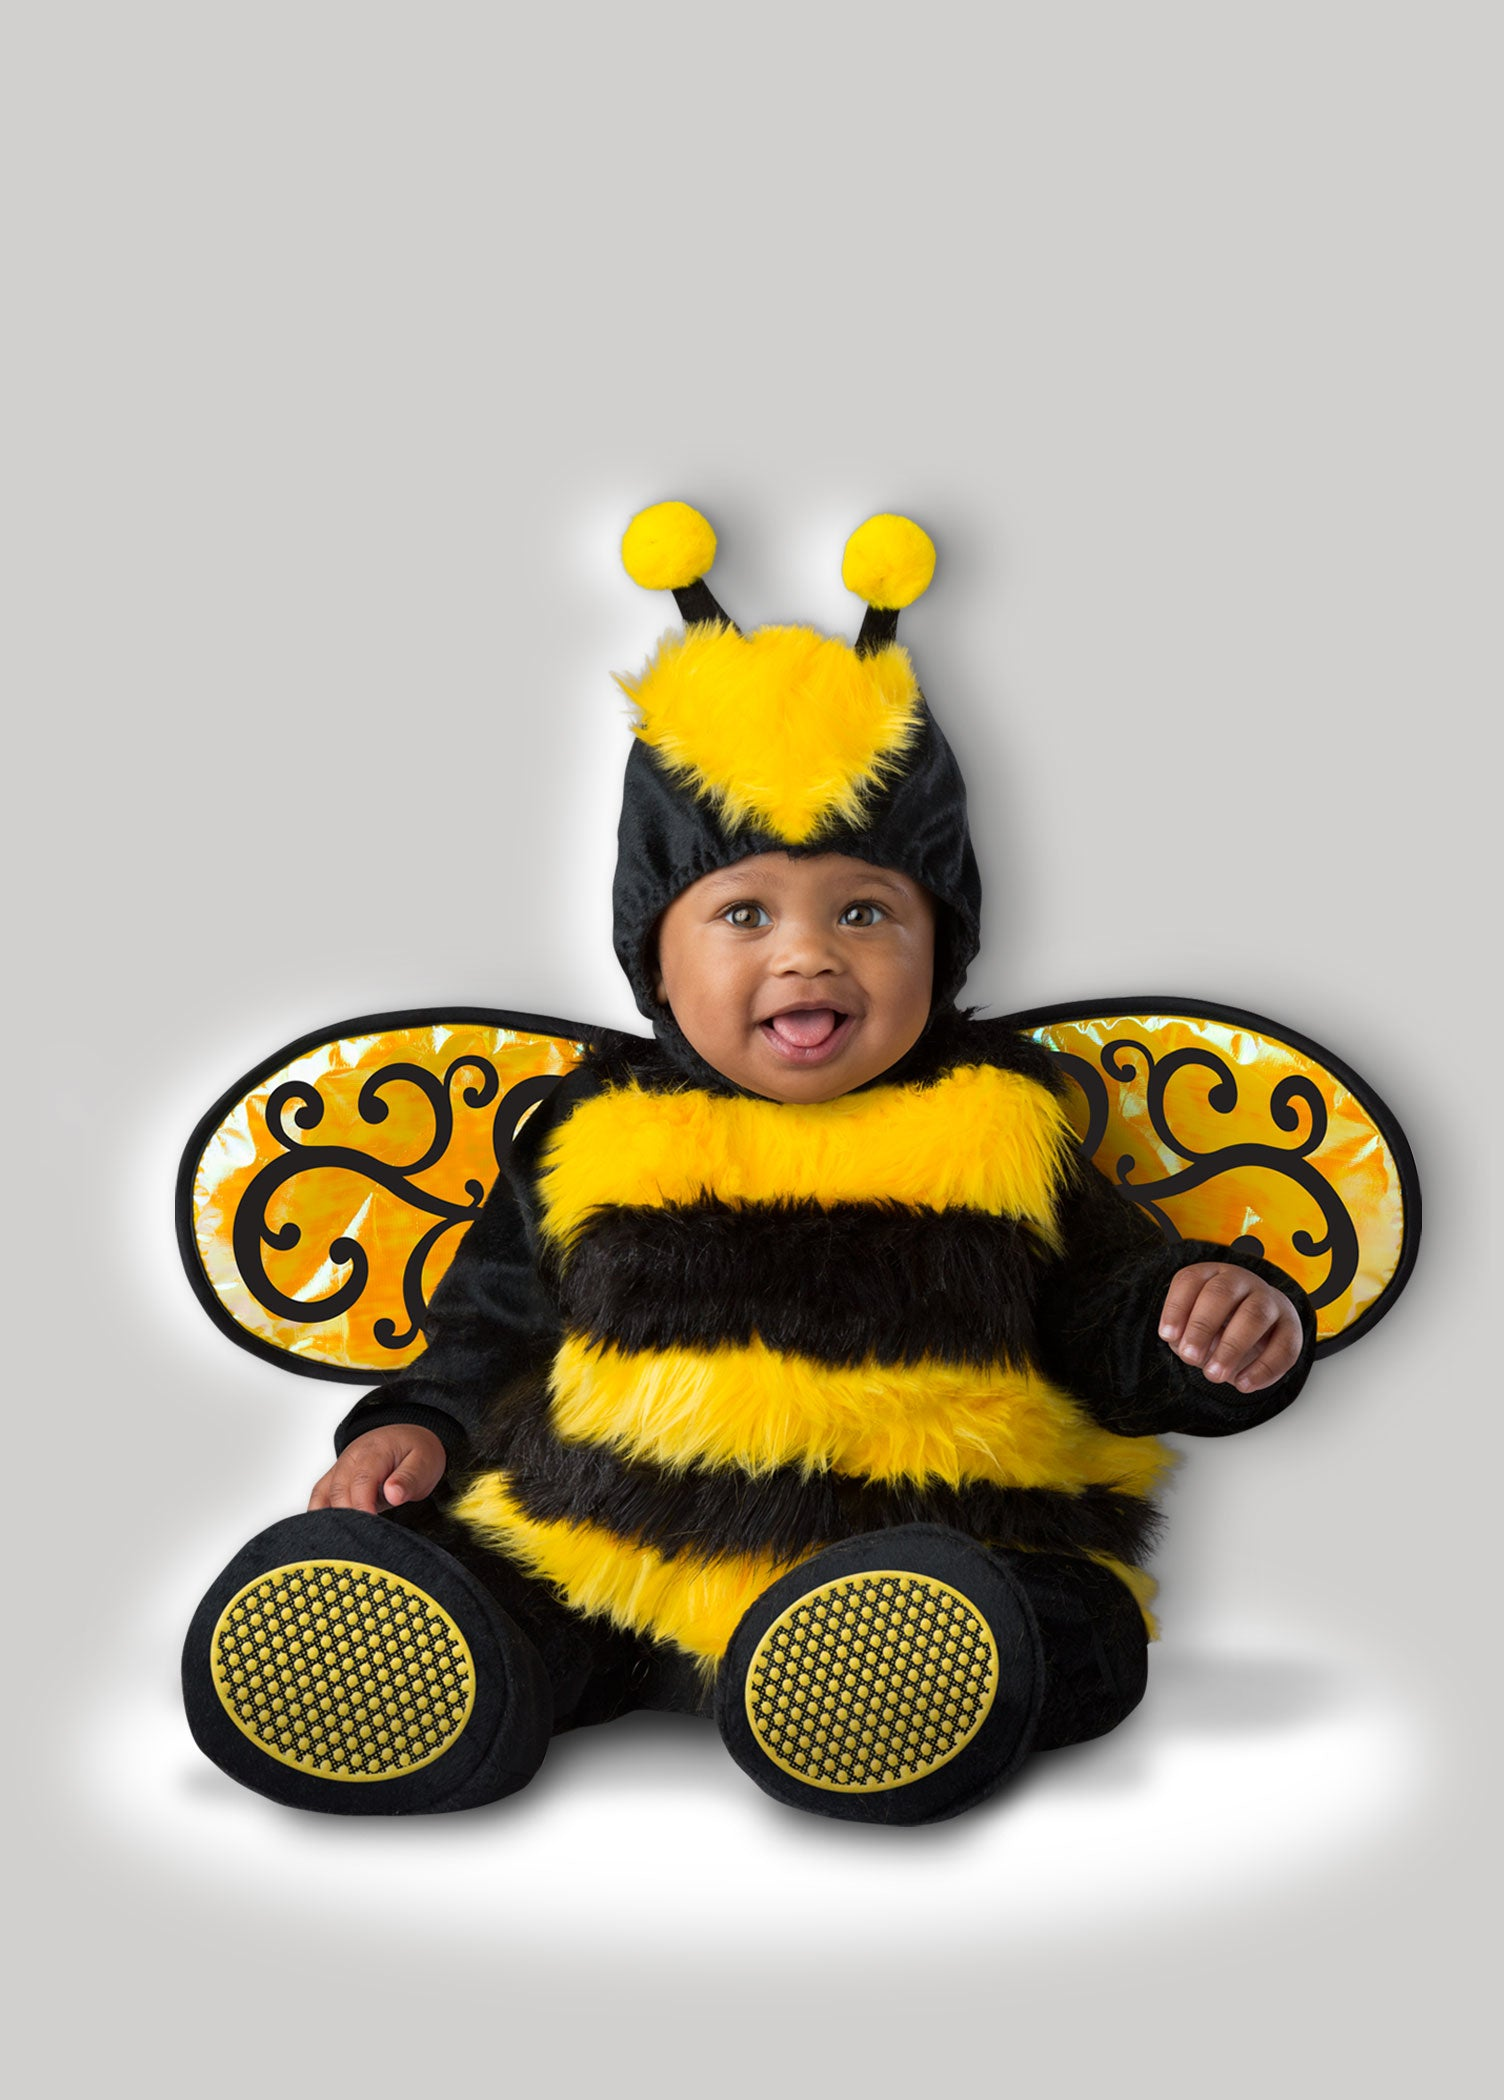 Baby Bumble CK6082  sc 1 st  InCharacter Costumes & Cute Bumblebee Deluxe Baby Costume u2013 InCharacter Costumes